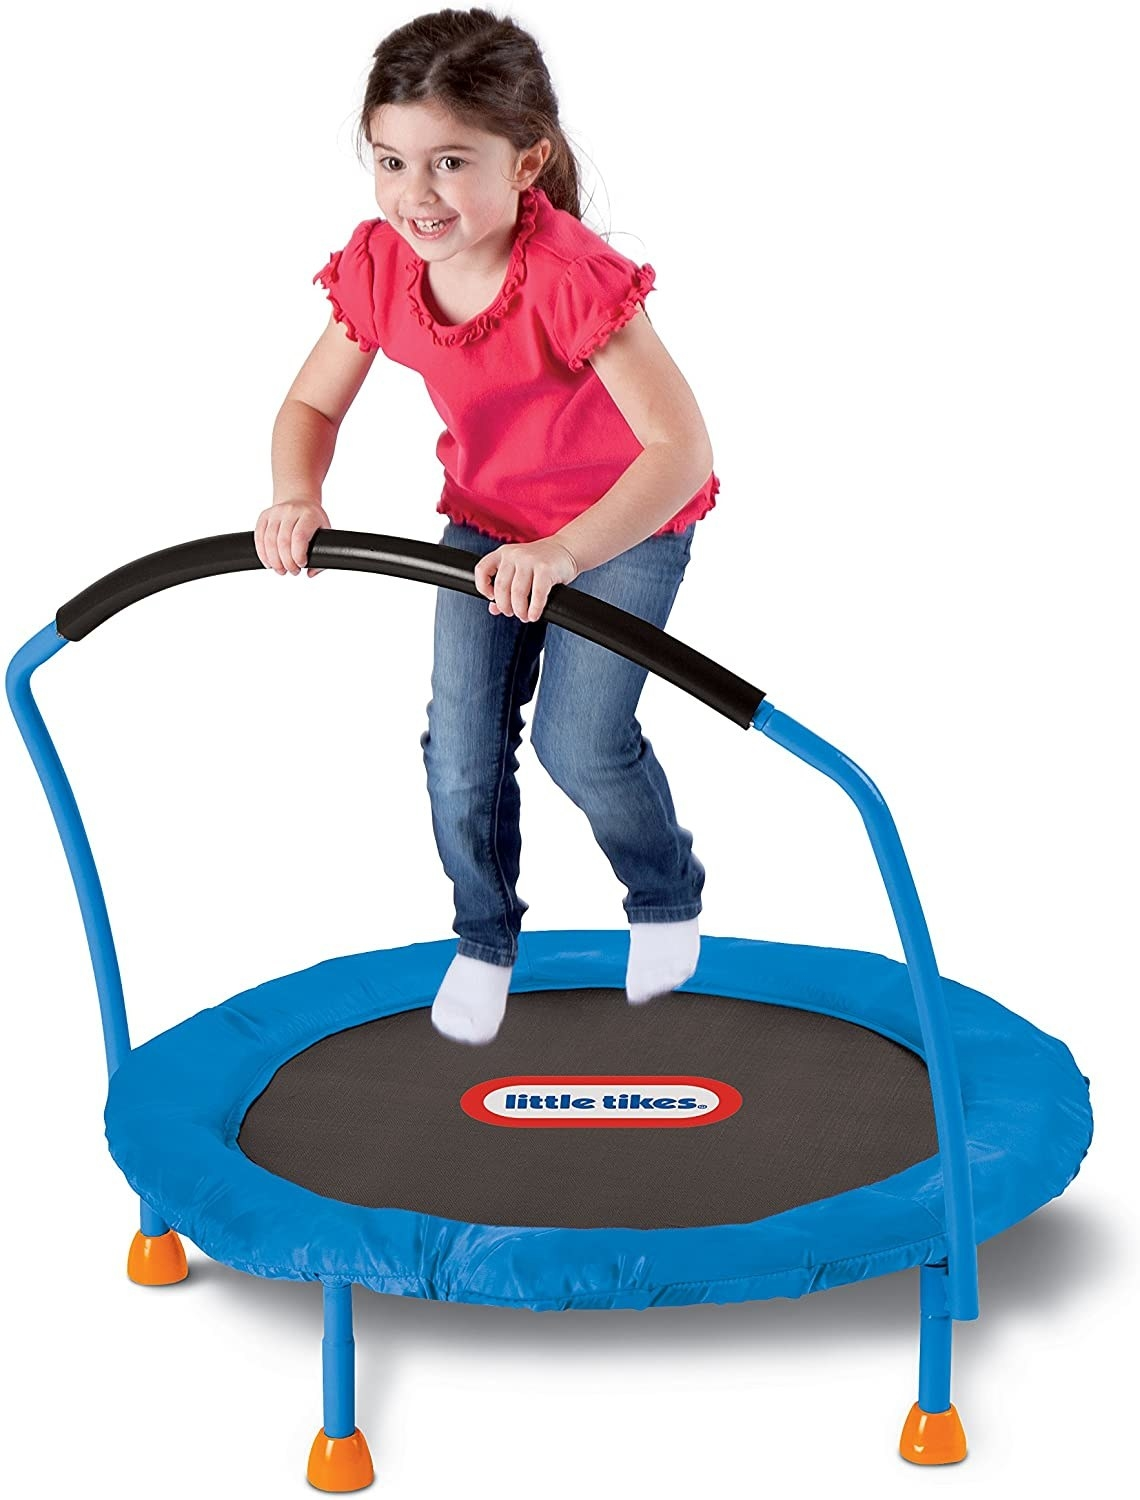 A young child bounces on a trampoline.